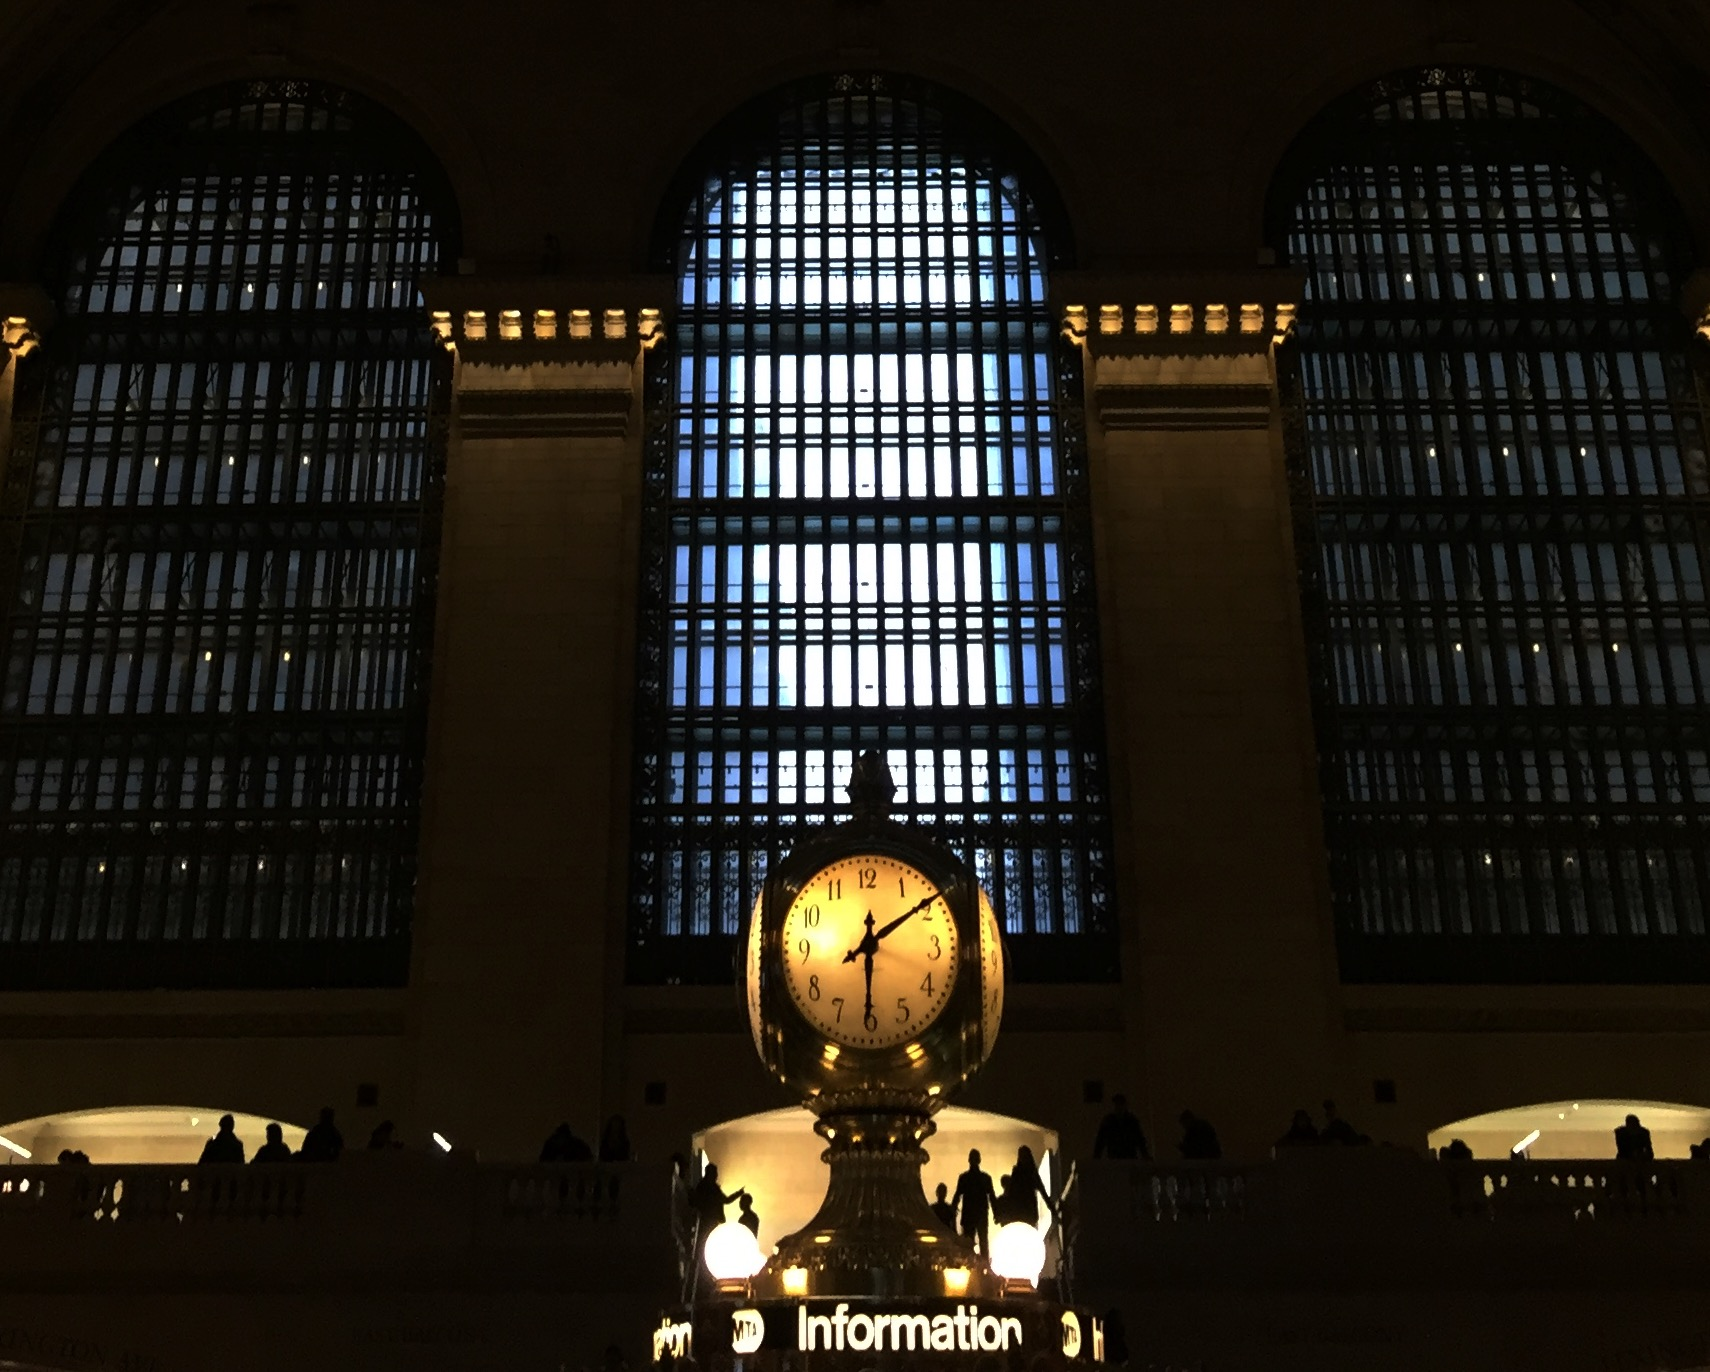 grand-central-station-clock-nyc